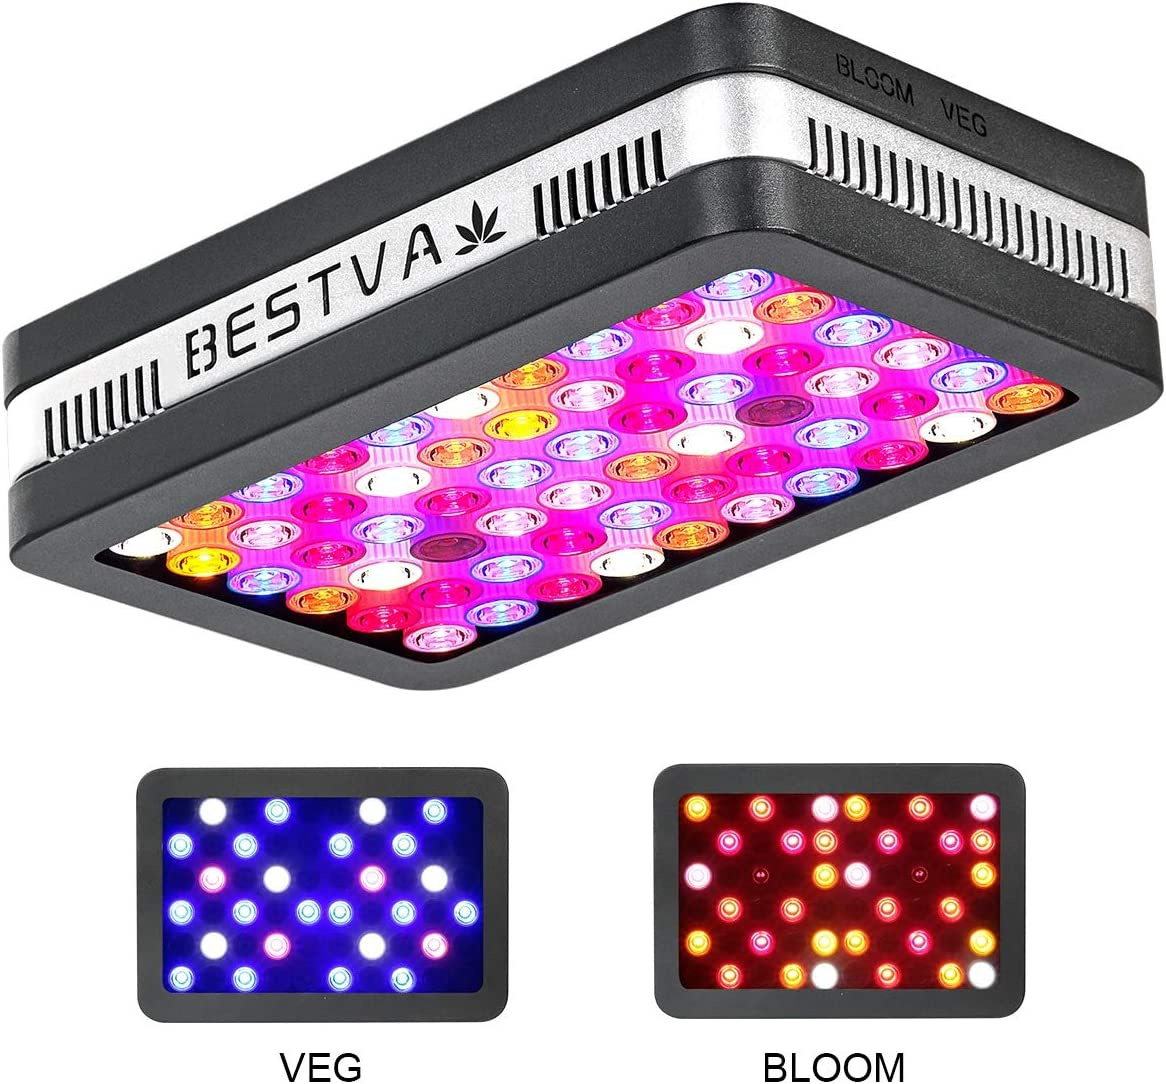 BESTVA Reflector Series 600W LED Grow Light Full Spectrum Grow Lamp for Hydroponic Indoor Plants Veg and Flower 2 Dim Infrared Rays